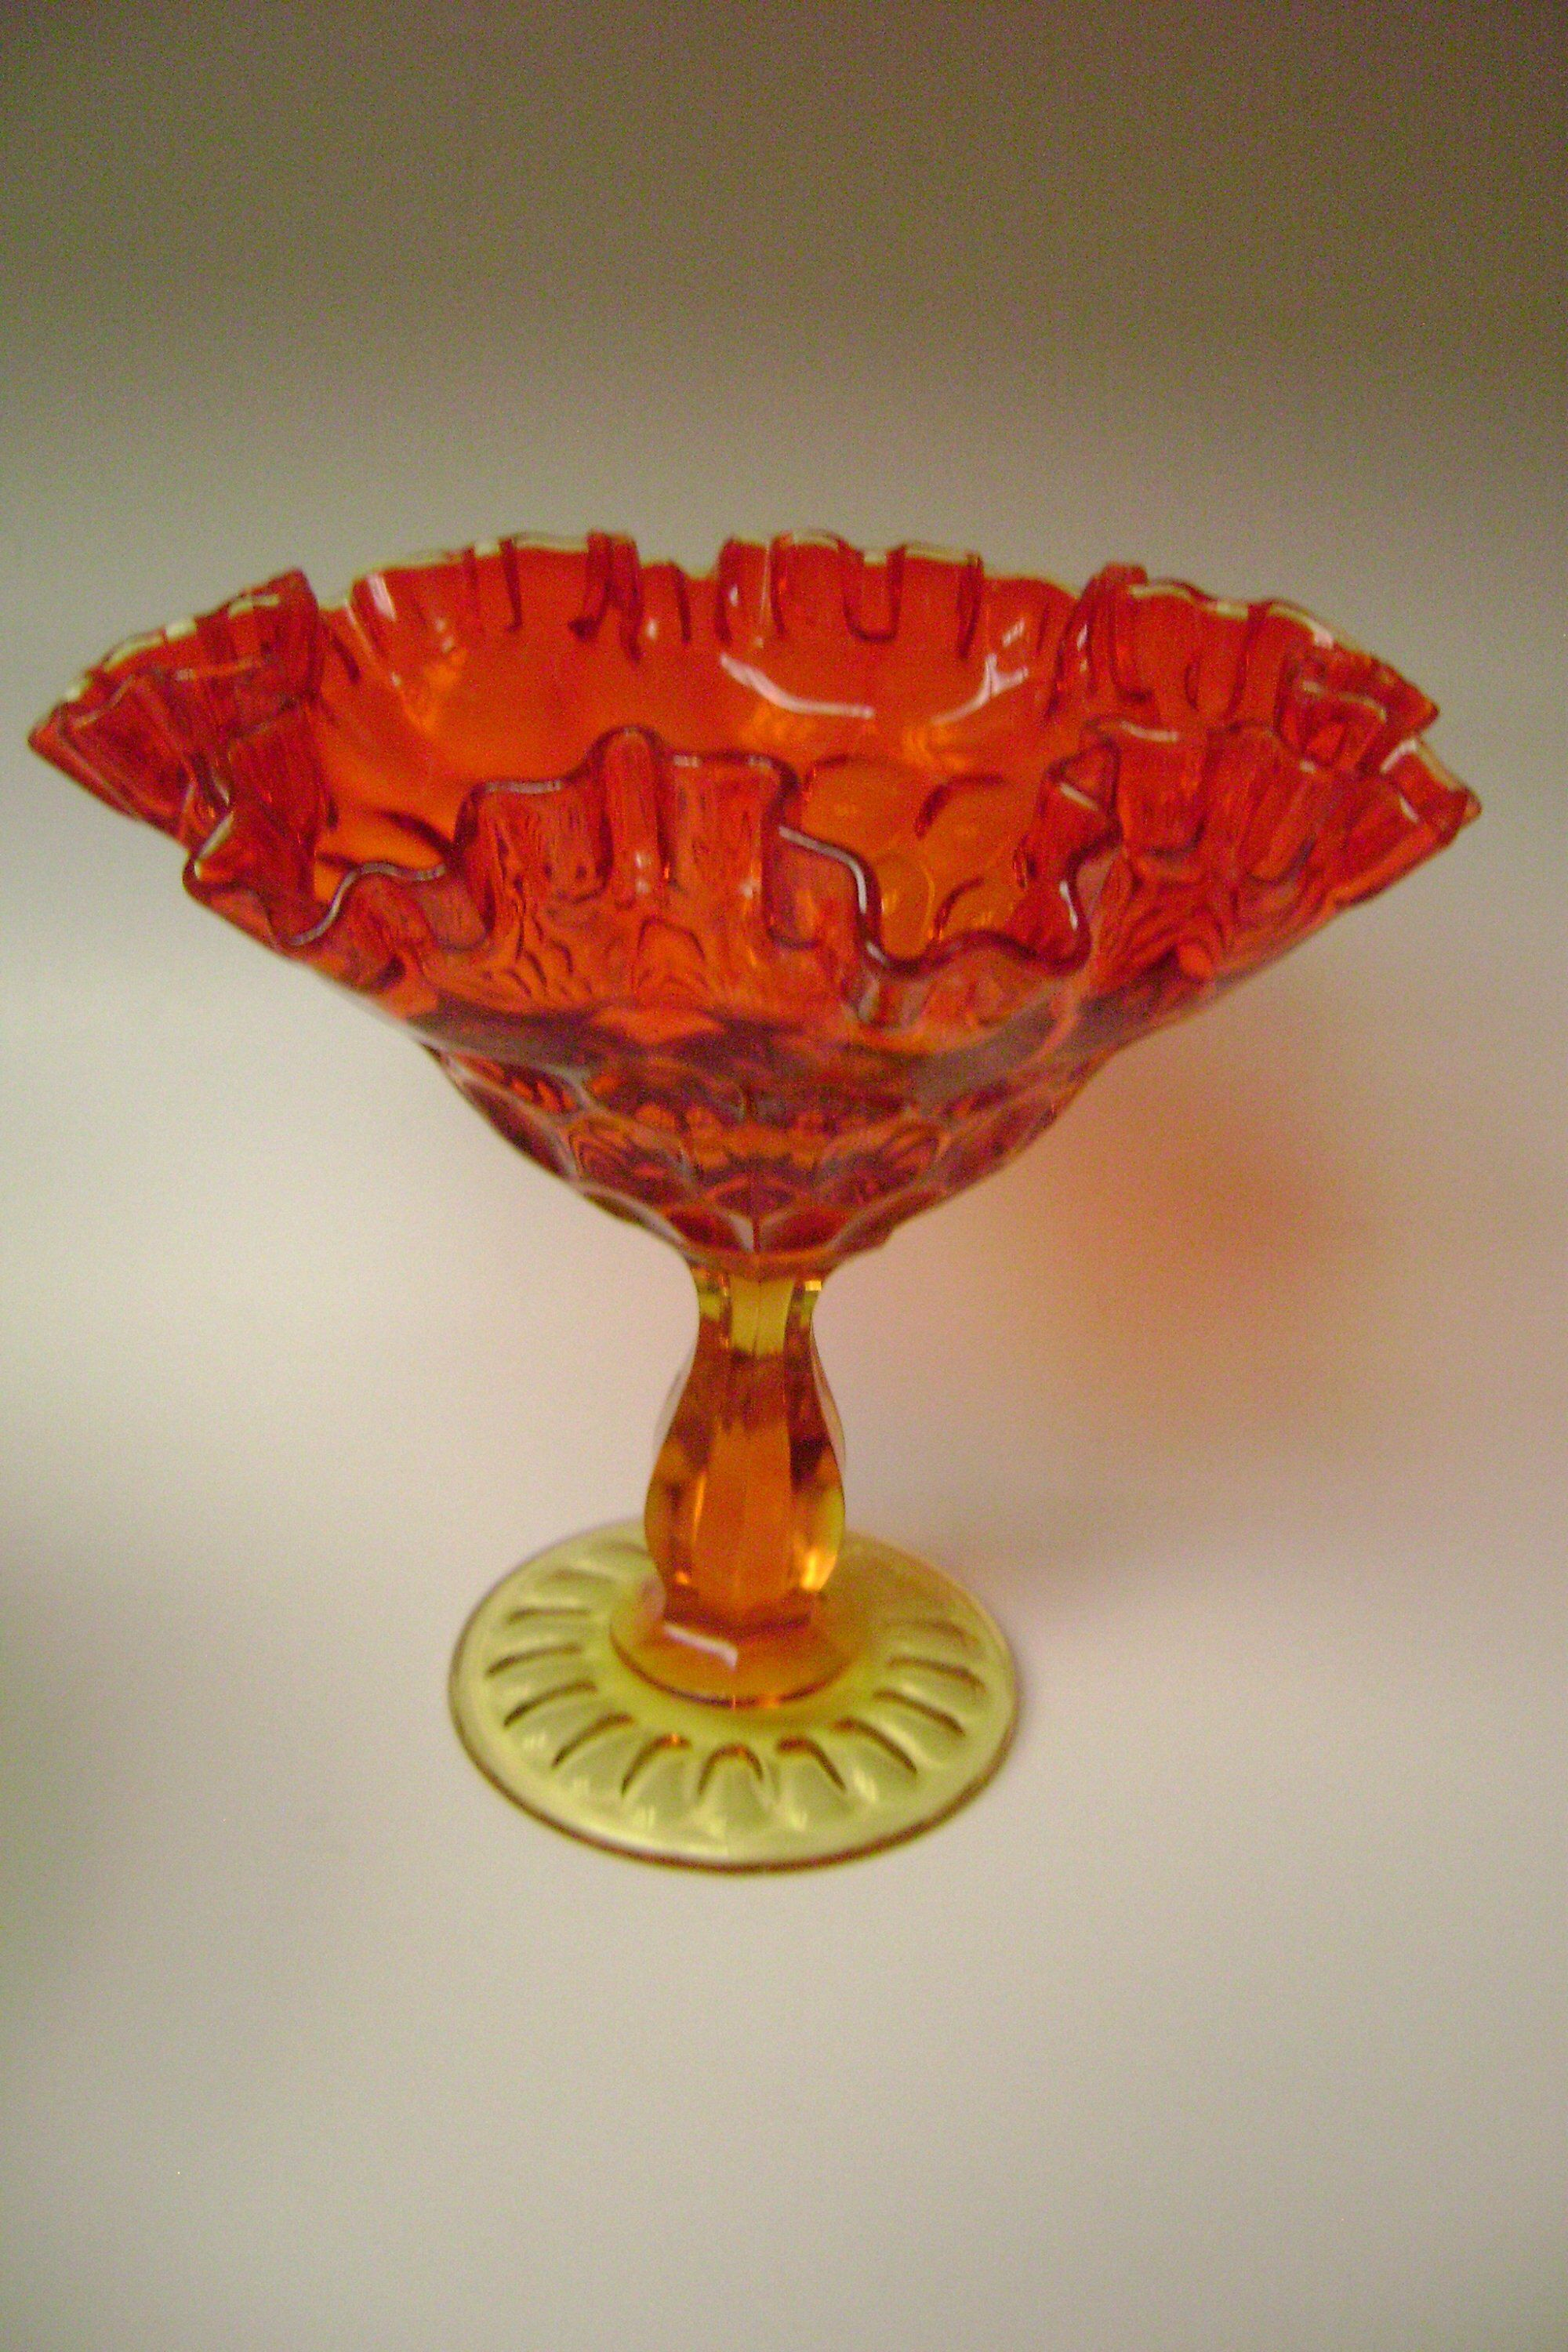 Large Fenton Amberina Ruffled Candy Dish Compote Red Etsy In 2020 Candy Dishes Glass Candy Dish Fenton